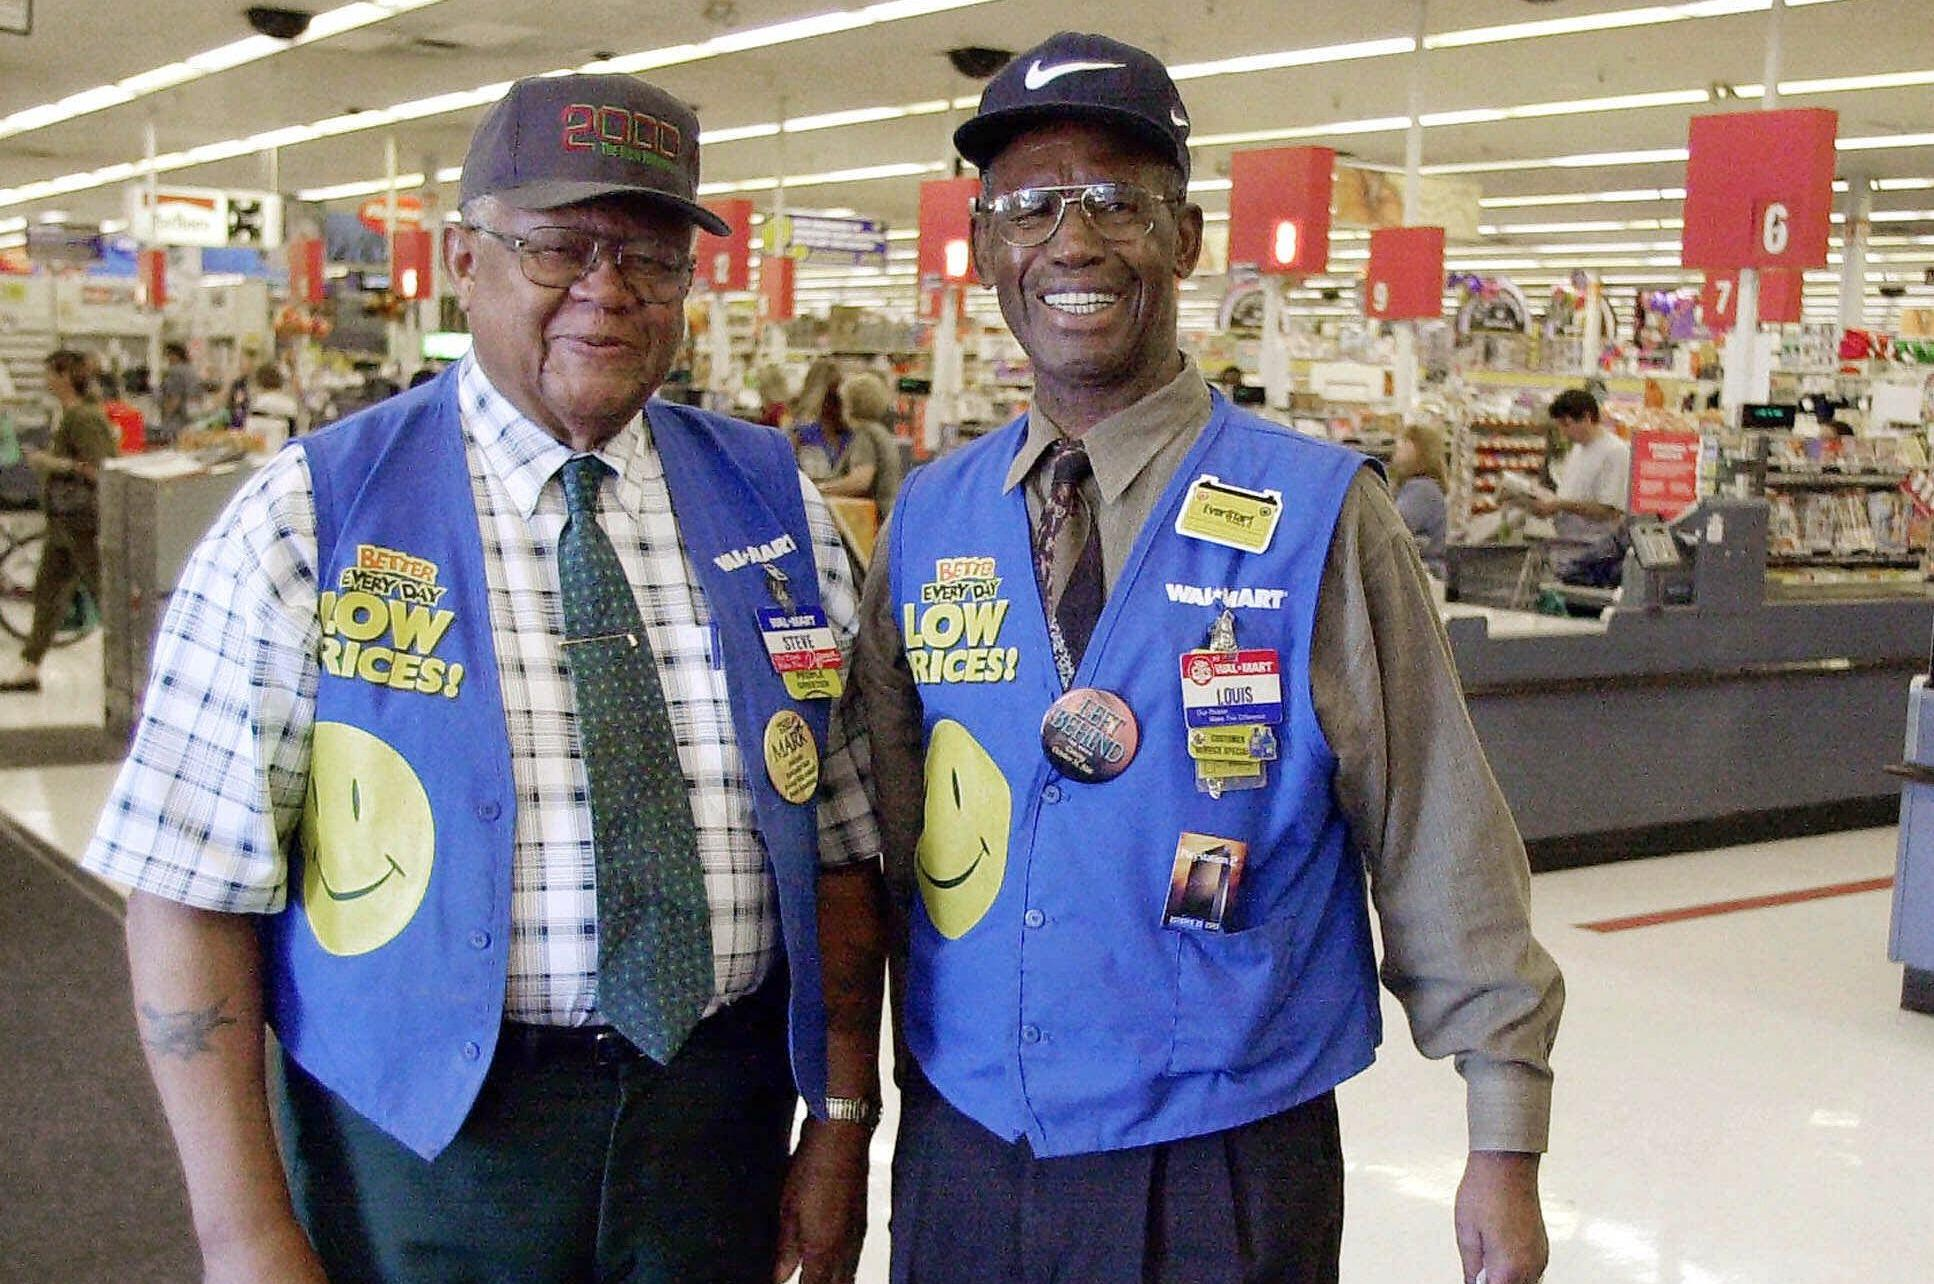 Wal-Mart greeters in T&a Fla. pose in this 2000 file photo  sc 1 st  The Spokesman-Review & Wal-Mart brings back greeters at the store door | The Spokesman-Review